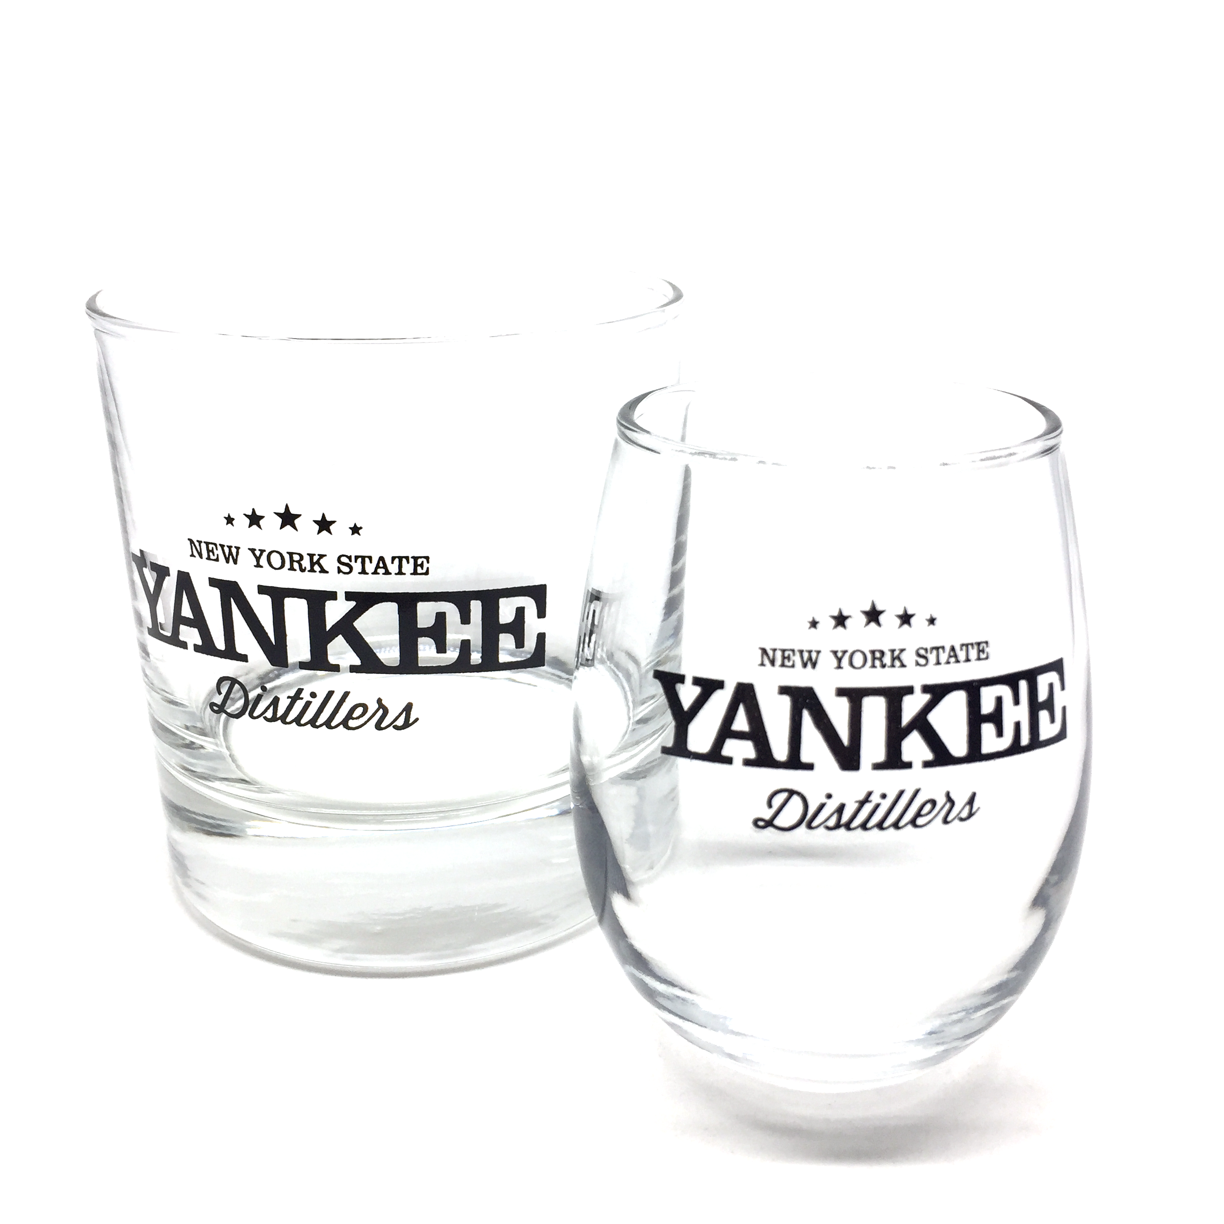 From Yankee Distillers, proving that the best Bourbon and Rye actually reside in the northeast! These guys do it right, with New York grains, and while we can't legally ship you their spirits, we offer you a choice of a beatuiful rocks glass, or a tasting glass that sits perfect in the hand. Cheers!